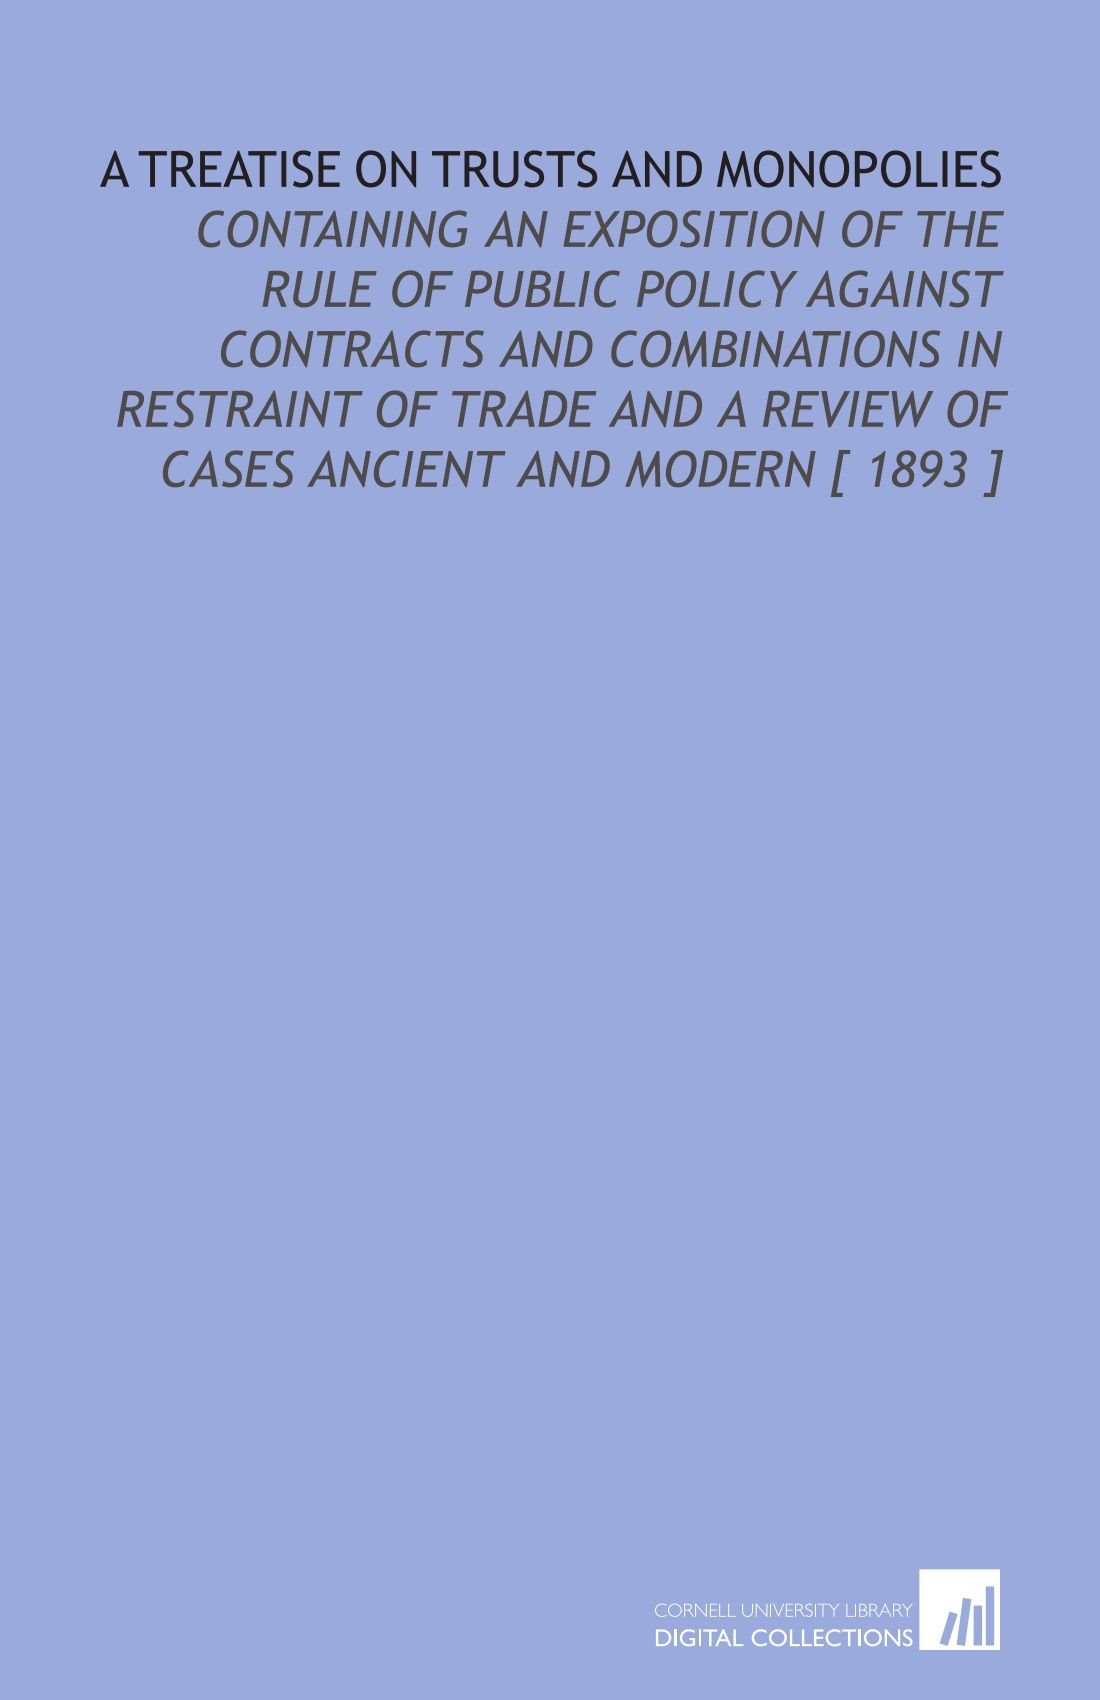 Download A Treatise on Trusts and Monopolies: Containing an Exposition of the Rule of Public Policy Against Contracts and Combinations in Restraint of Trade and a Review of Cases Ancient and Modern [ 1893 ] PDF